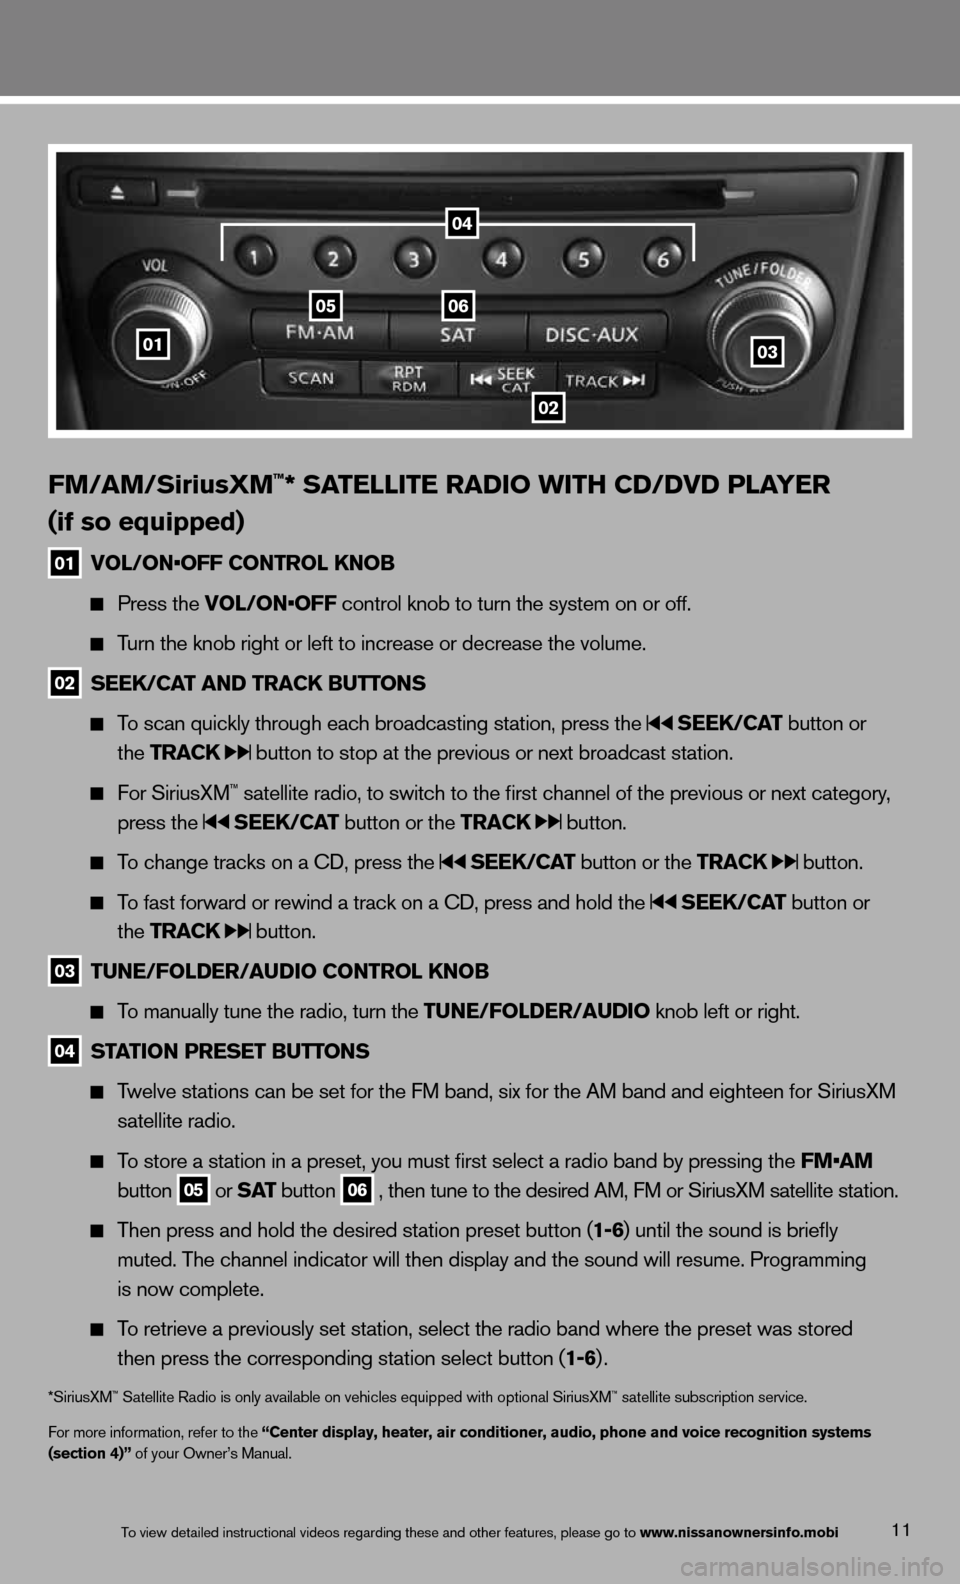 NISSAN 370Z ROADSTER 2013 Z34 Quick Reference Guide 11 FM/\fM/SiriusXM™* S\fTE\b\bITE R\fDIO WITH CD/\FDVD P\b\fYER  ( if so equipped) 01  VO\b/ON•OFF CONTRO\b kNOB      Press \fhe VO\b/ON•OFF con\frol knob \fo \fur\mn \fhe sys\fem on or o\mff.